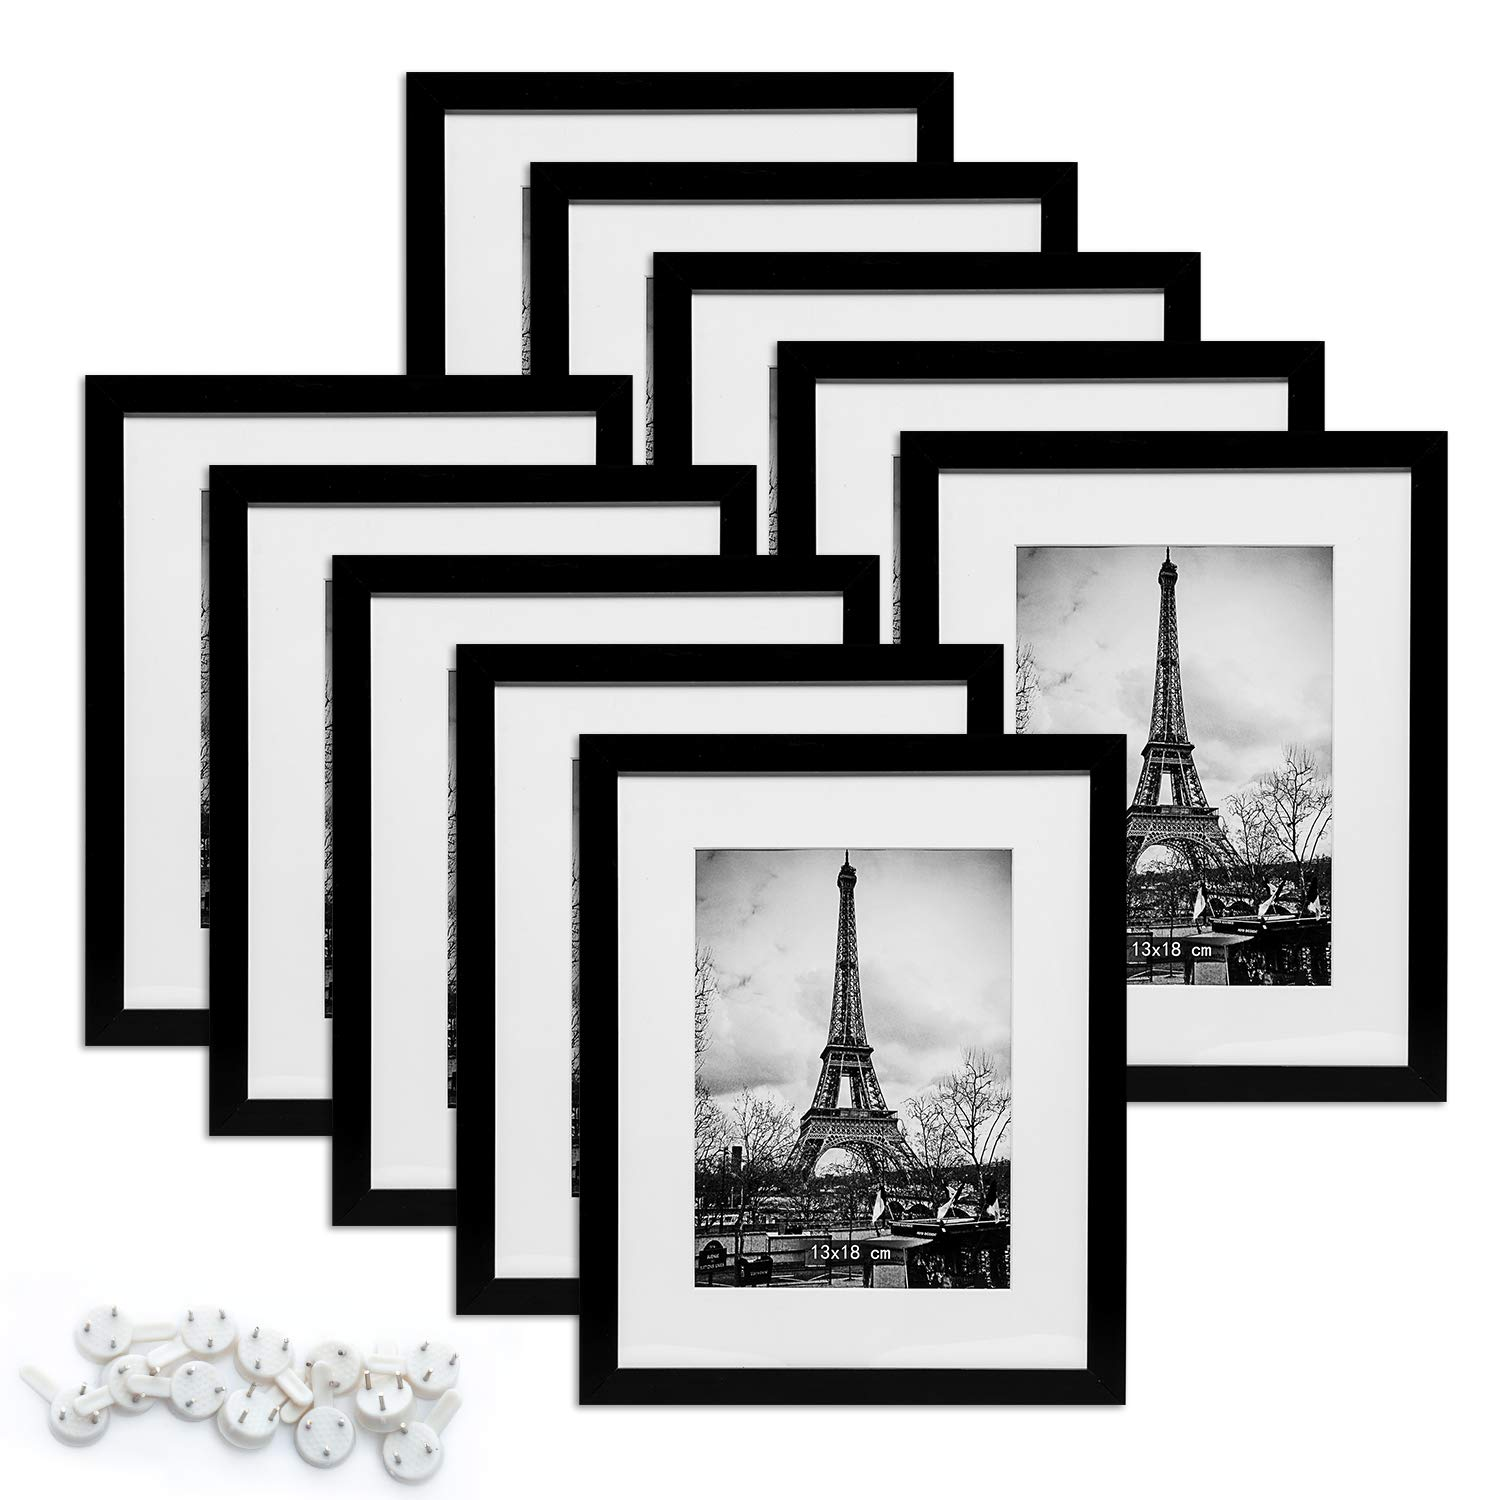 upsimples 8x10 Picture Frame Set of 10,Multi Photo Frames Collage for Wall or Tabletop Display,Black by upsimples